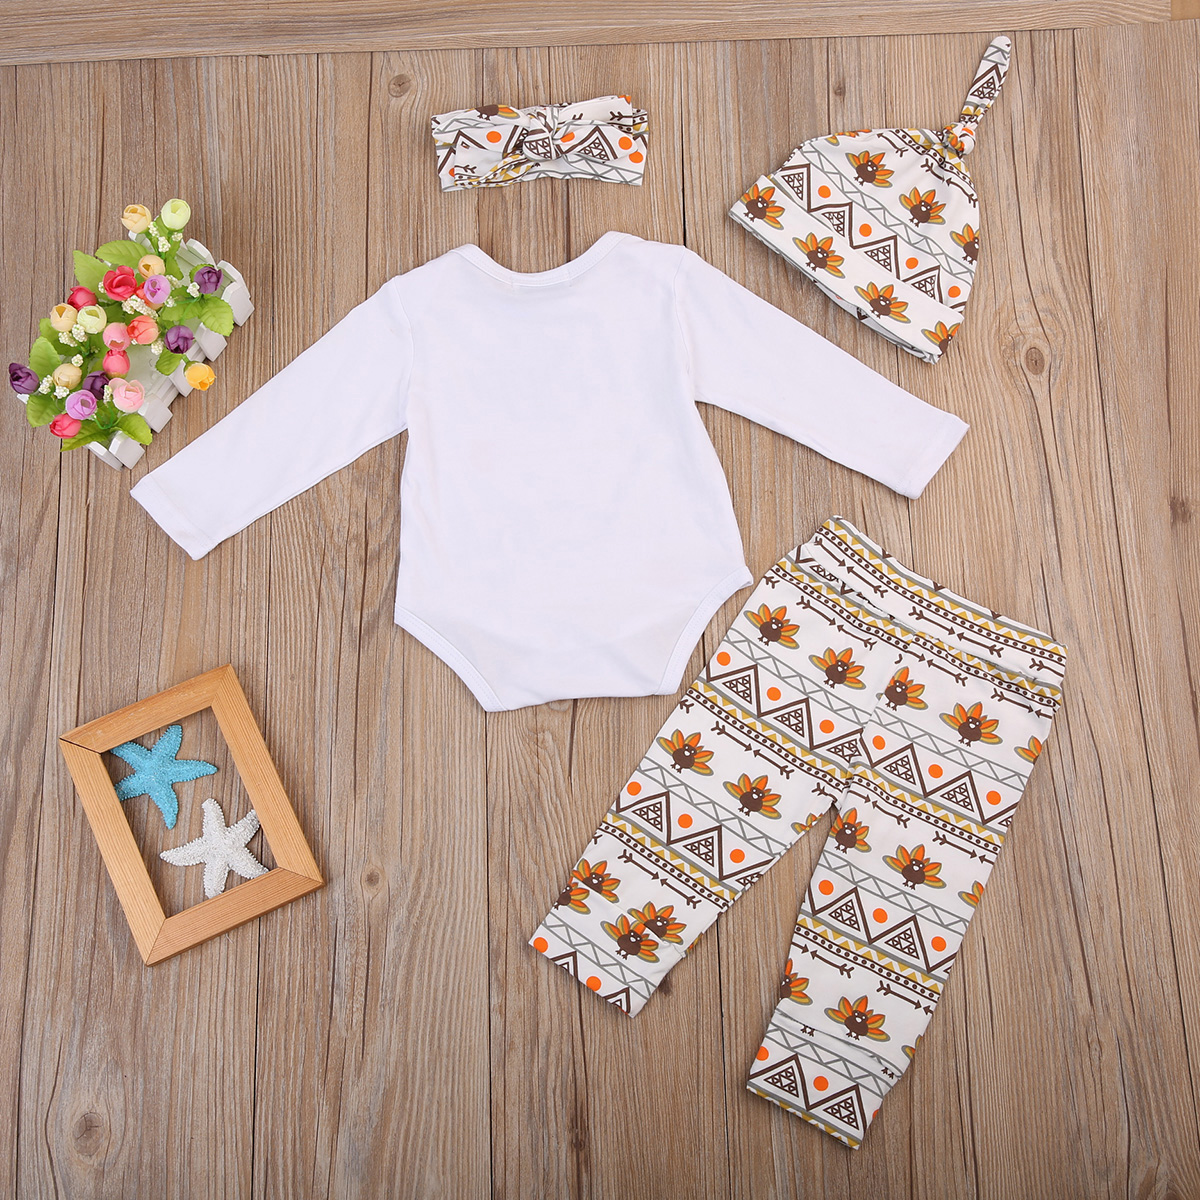 24166ea942f1 4PCS Set Baby Thanksgiving Day set Newborn Boy Girl Tops Romper+Pants  Leggings Hat Outfits Clothes-in Clothing Sets from Mother   Kids on  Aliexpress.com ...